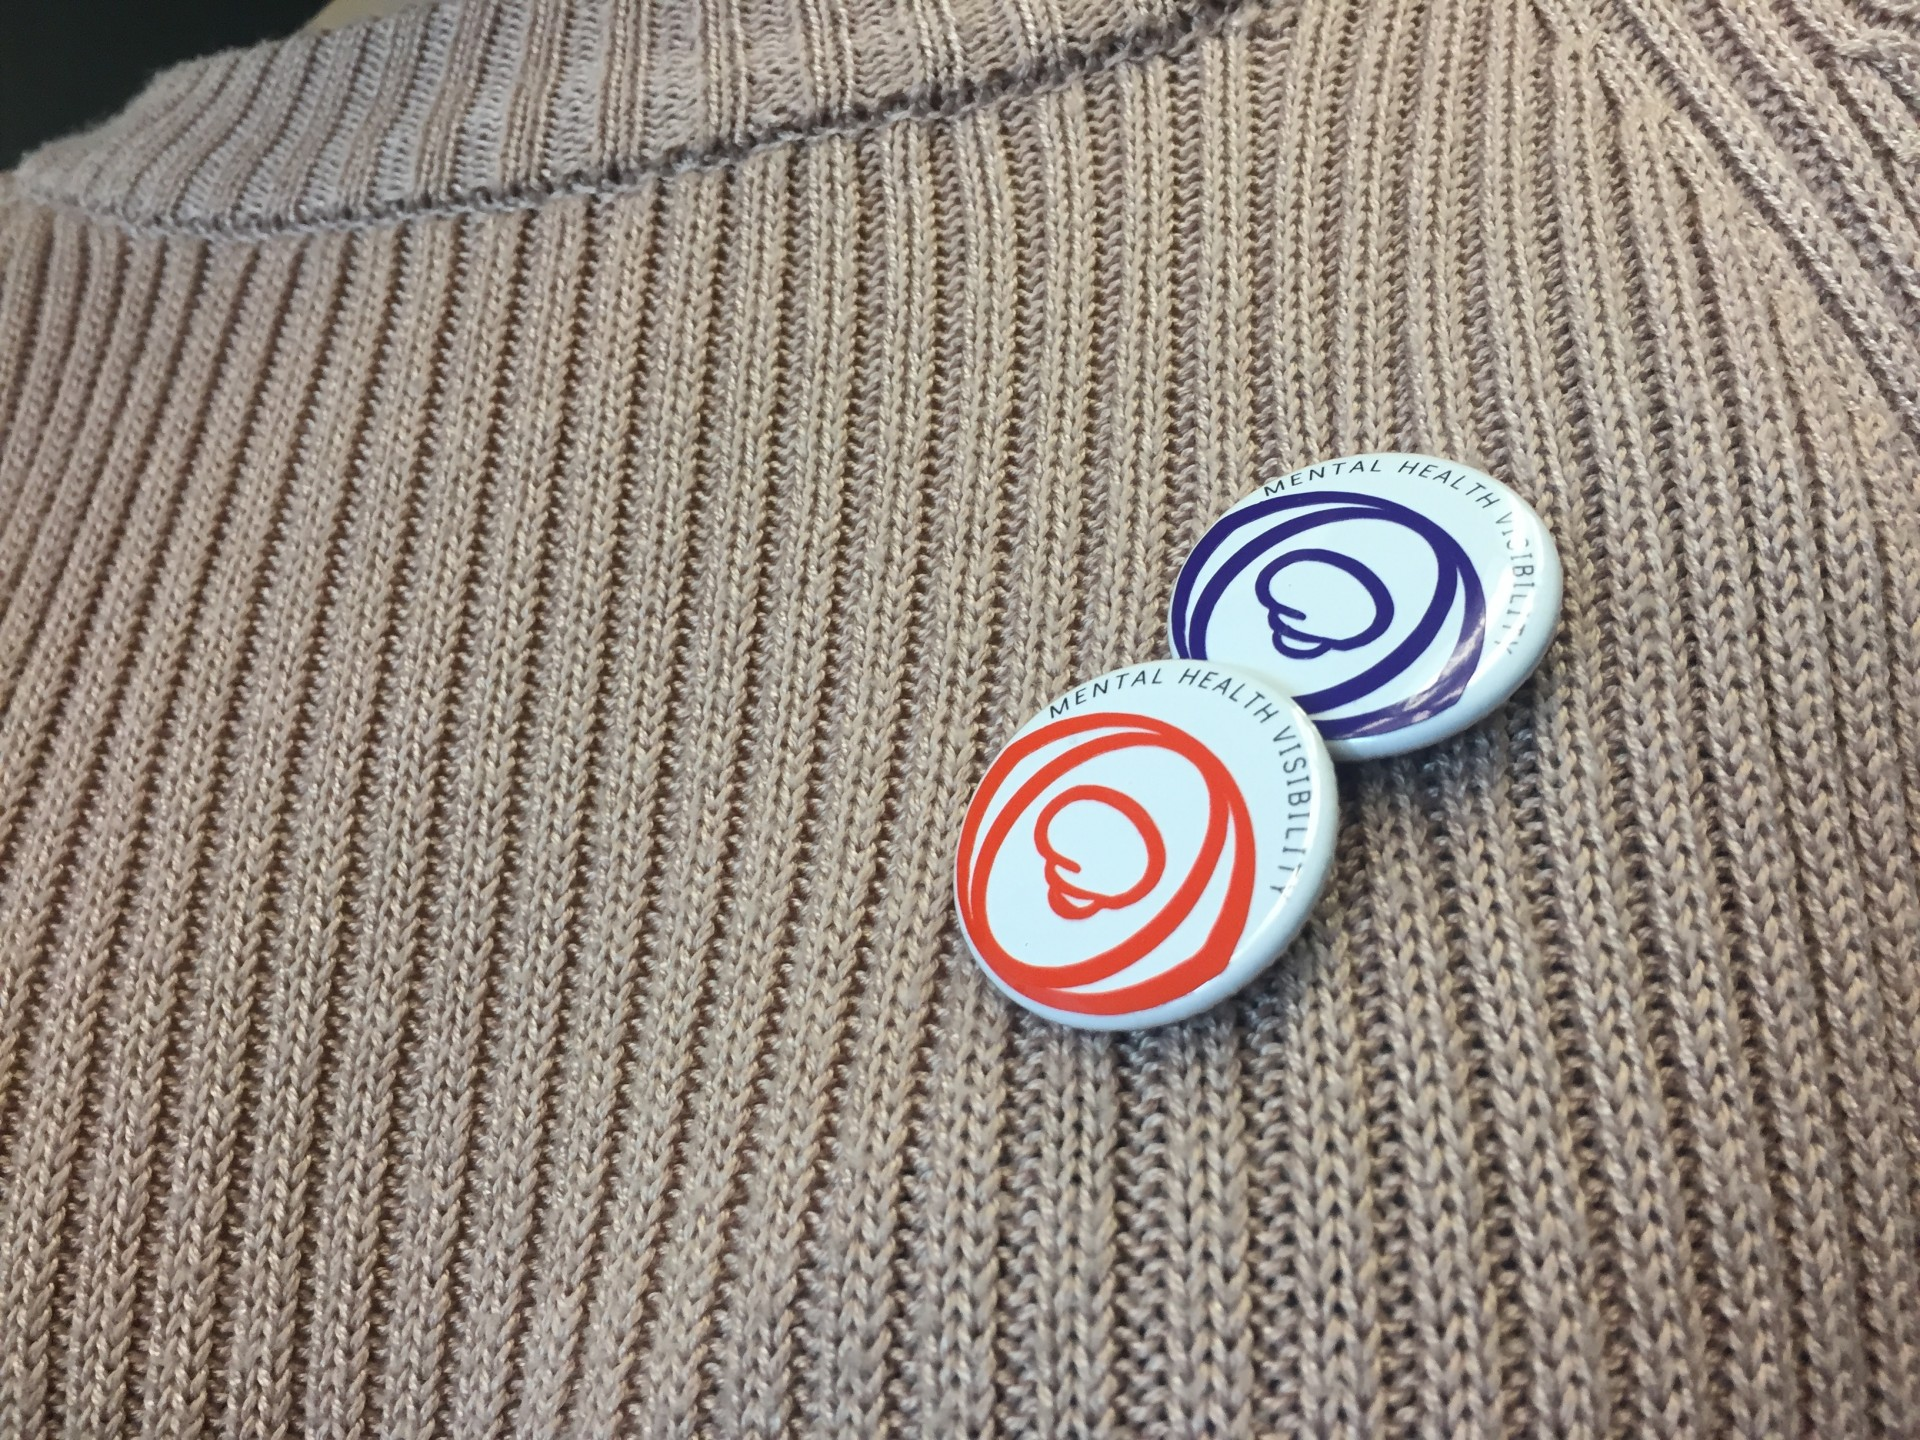 Pins for Anxiety Disorders (orange) and Obsessive-Compulsive and Related Disorders (purple)